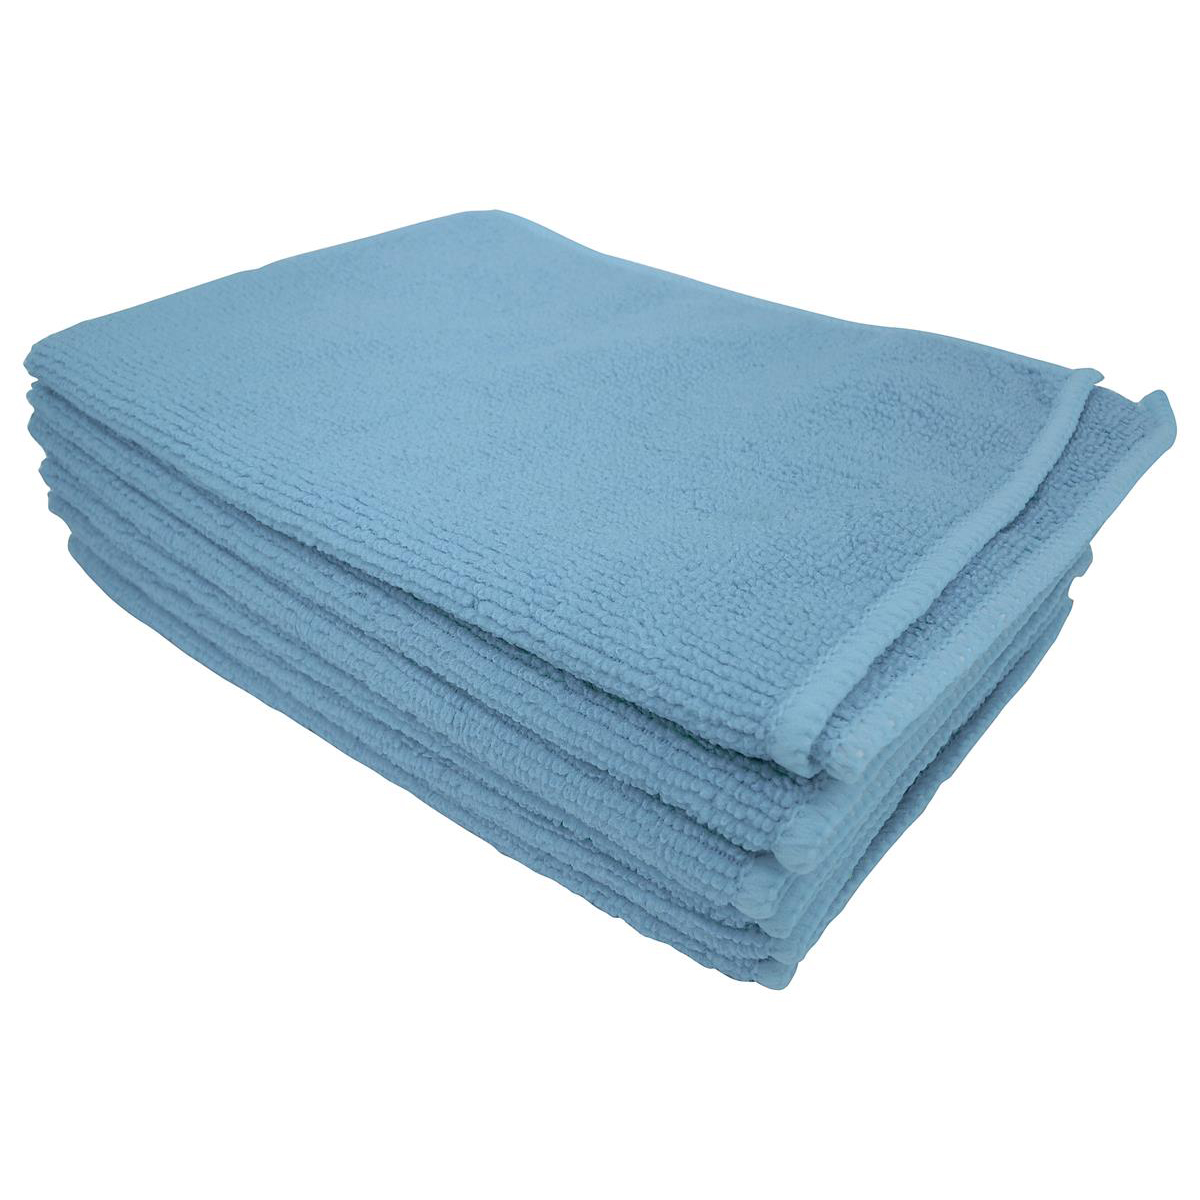 Cloths / Dusters / Scourers / Sponges 5 Star Facilities Microfibre Cleaning Cloth Colour-coded Multi-surface Blue Pack 6